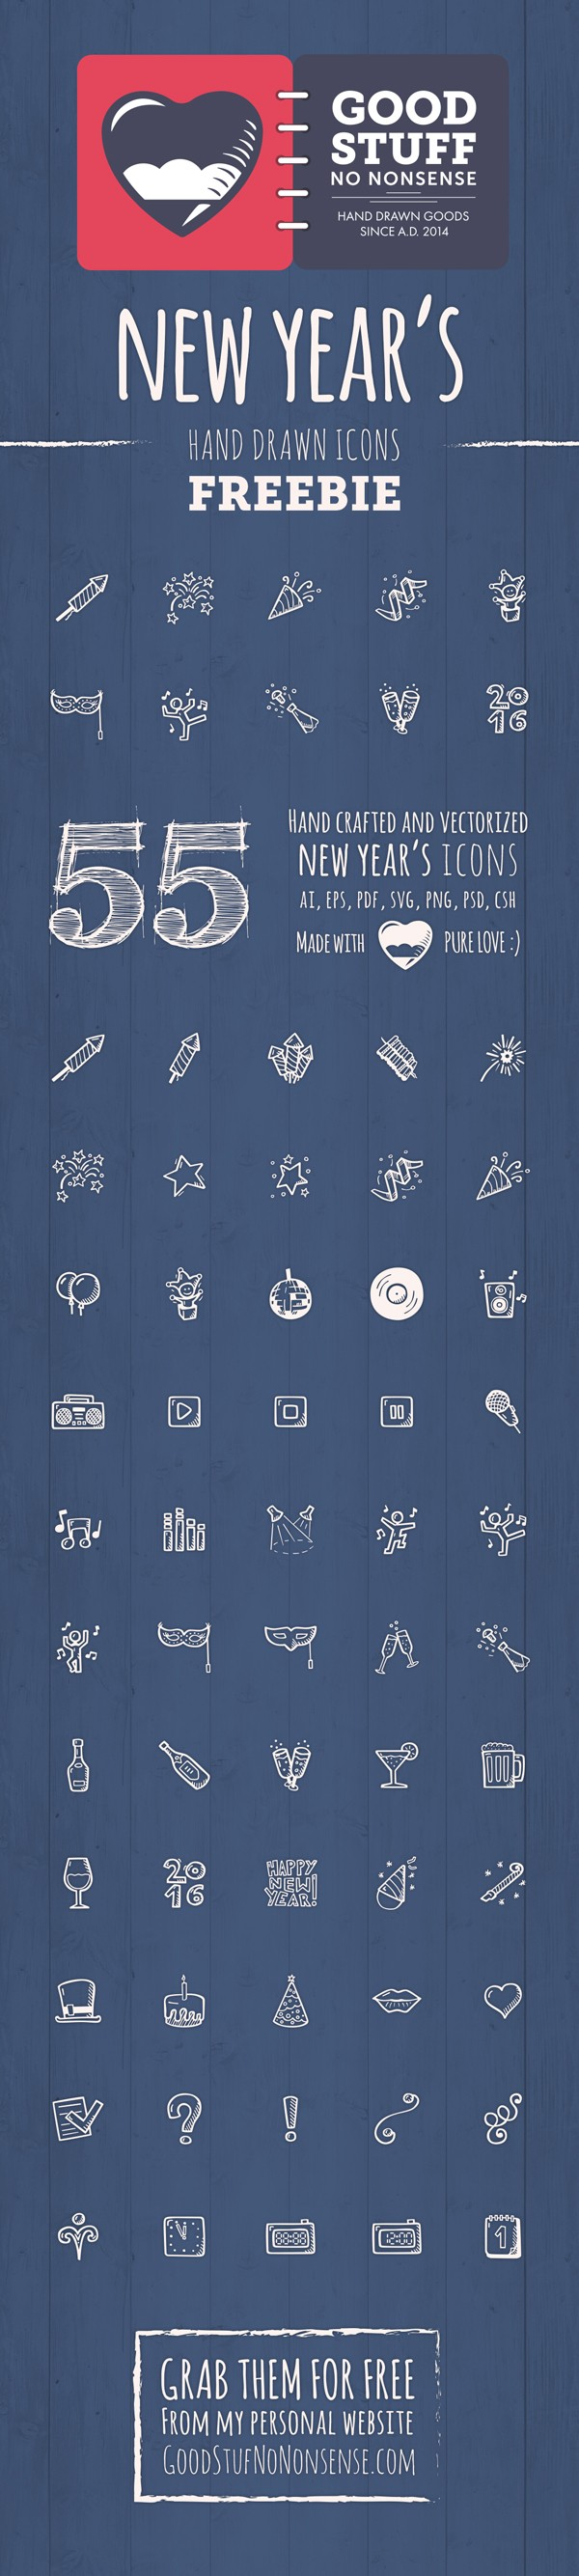 new-years-icons-freebie-full